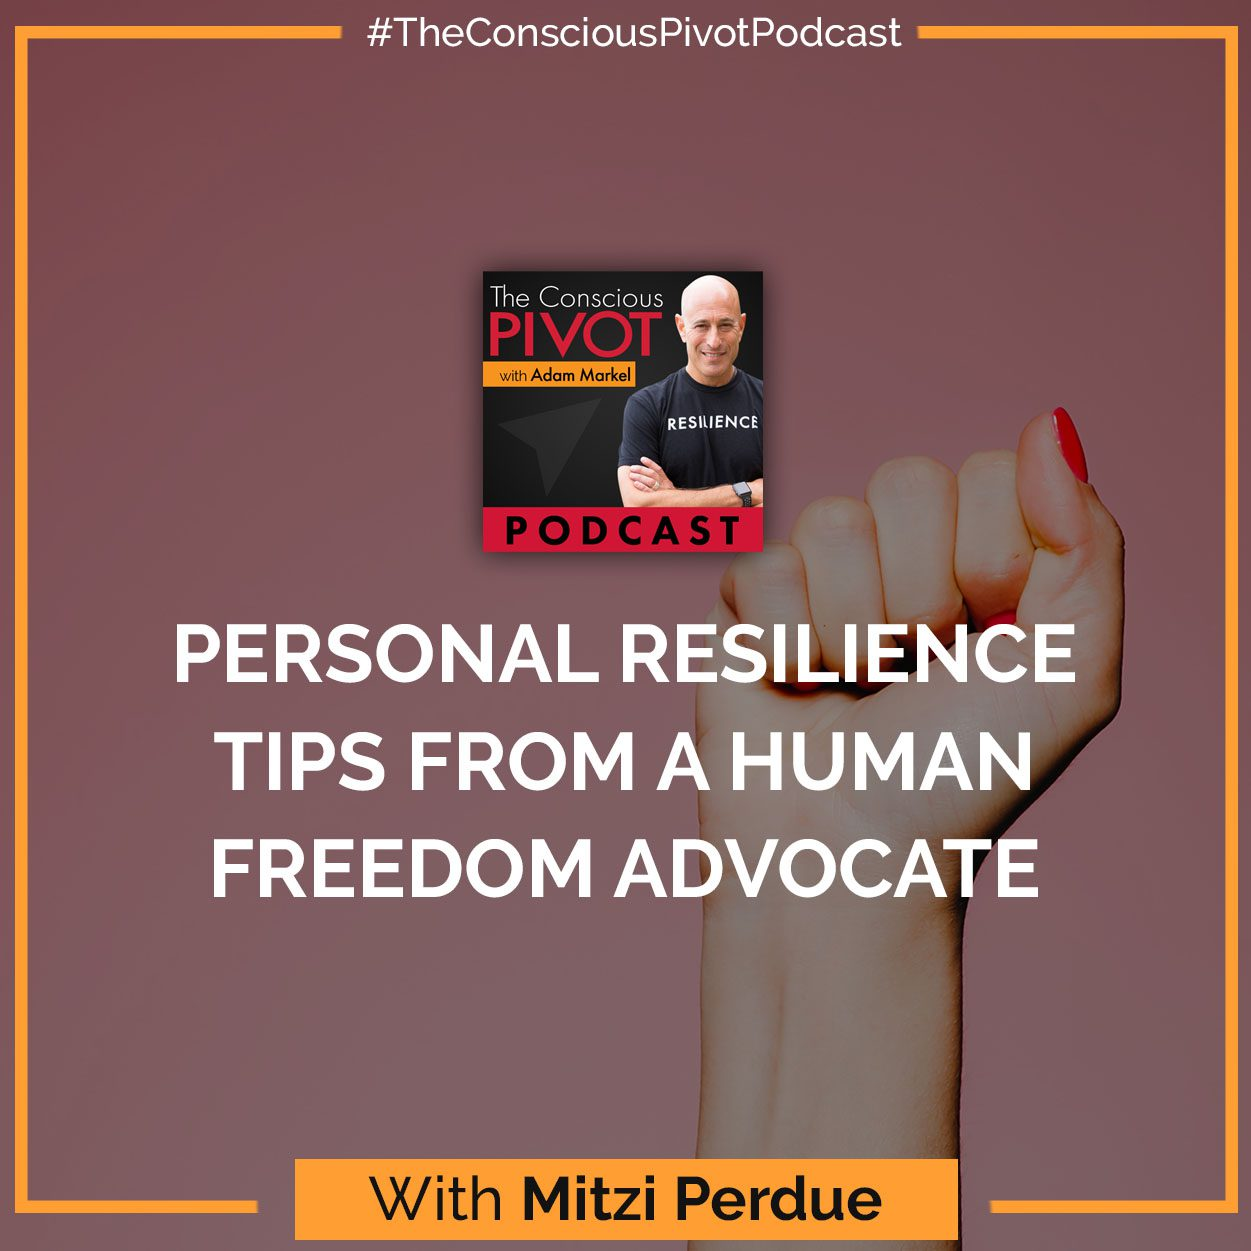 Personal Resilience Tips From A Human Freedom Advocate With Mitzi Perdue